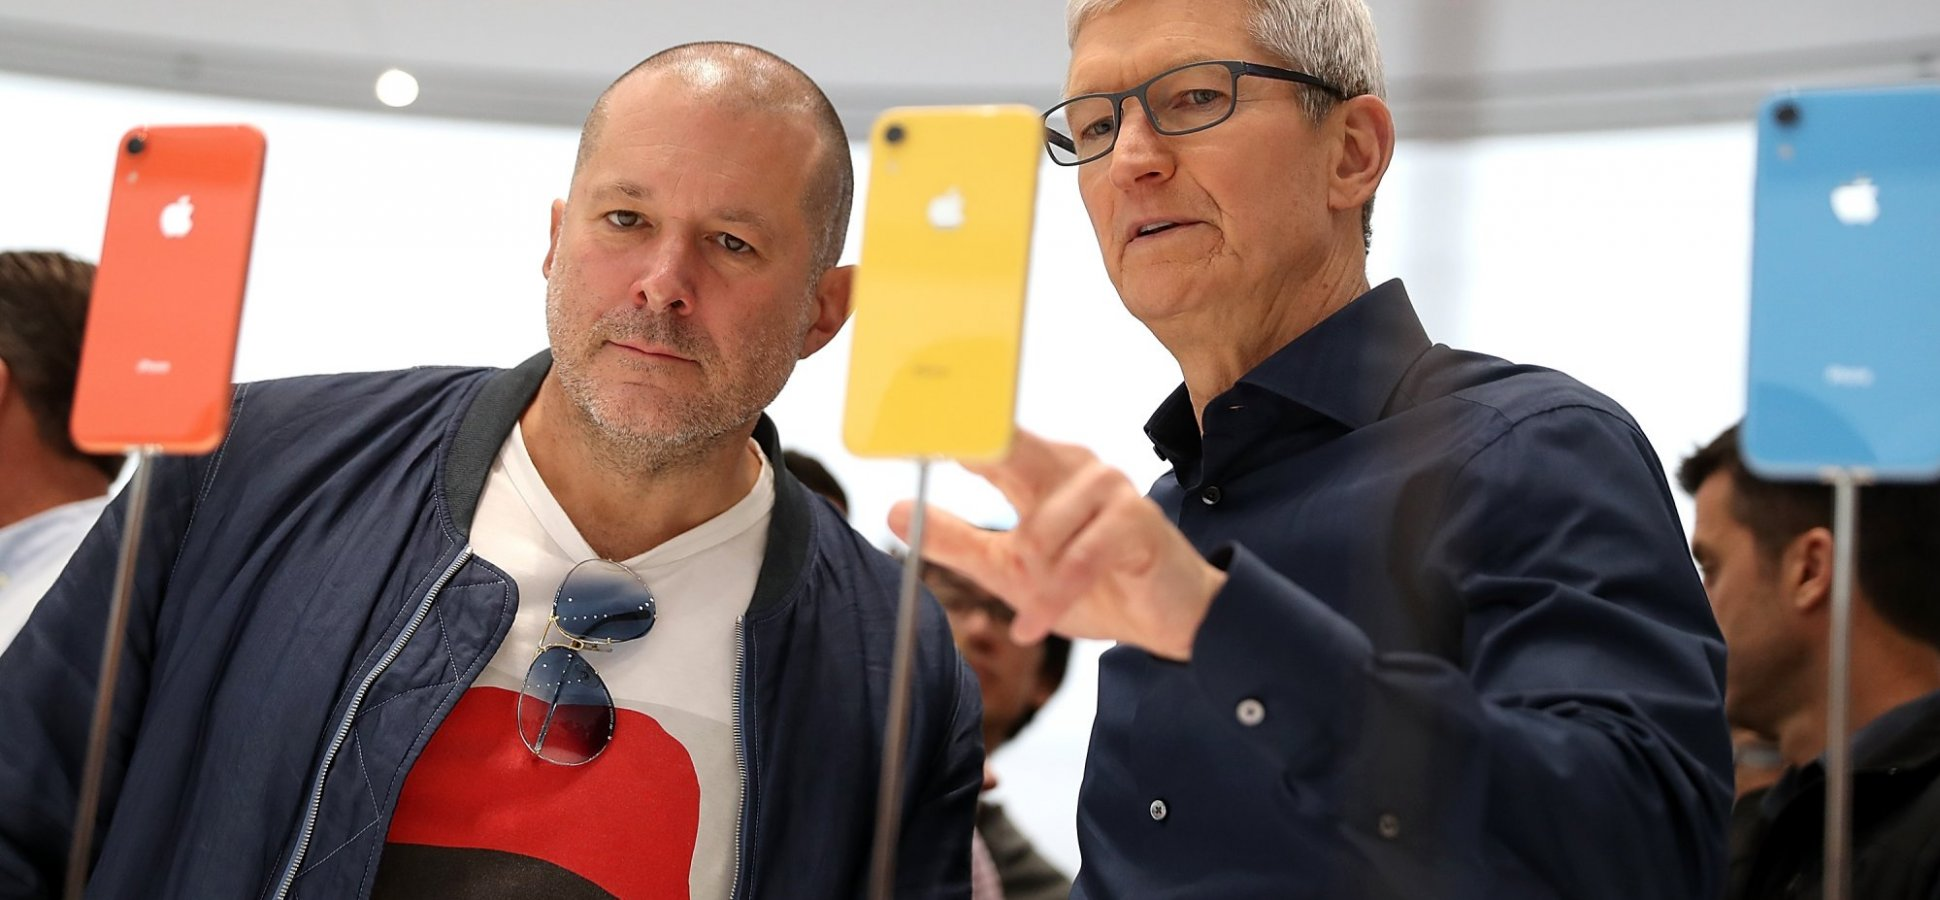 The Counterintuitive Case That Jony Ive's Apple Was Actually Good for the Planet